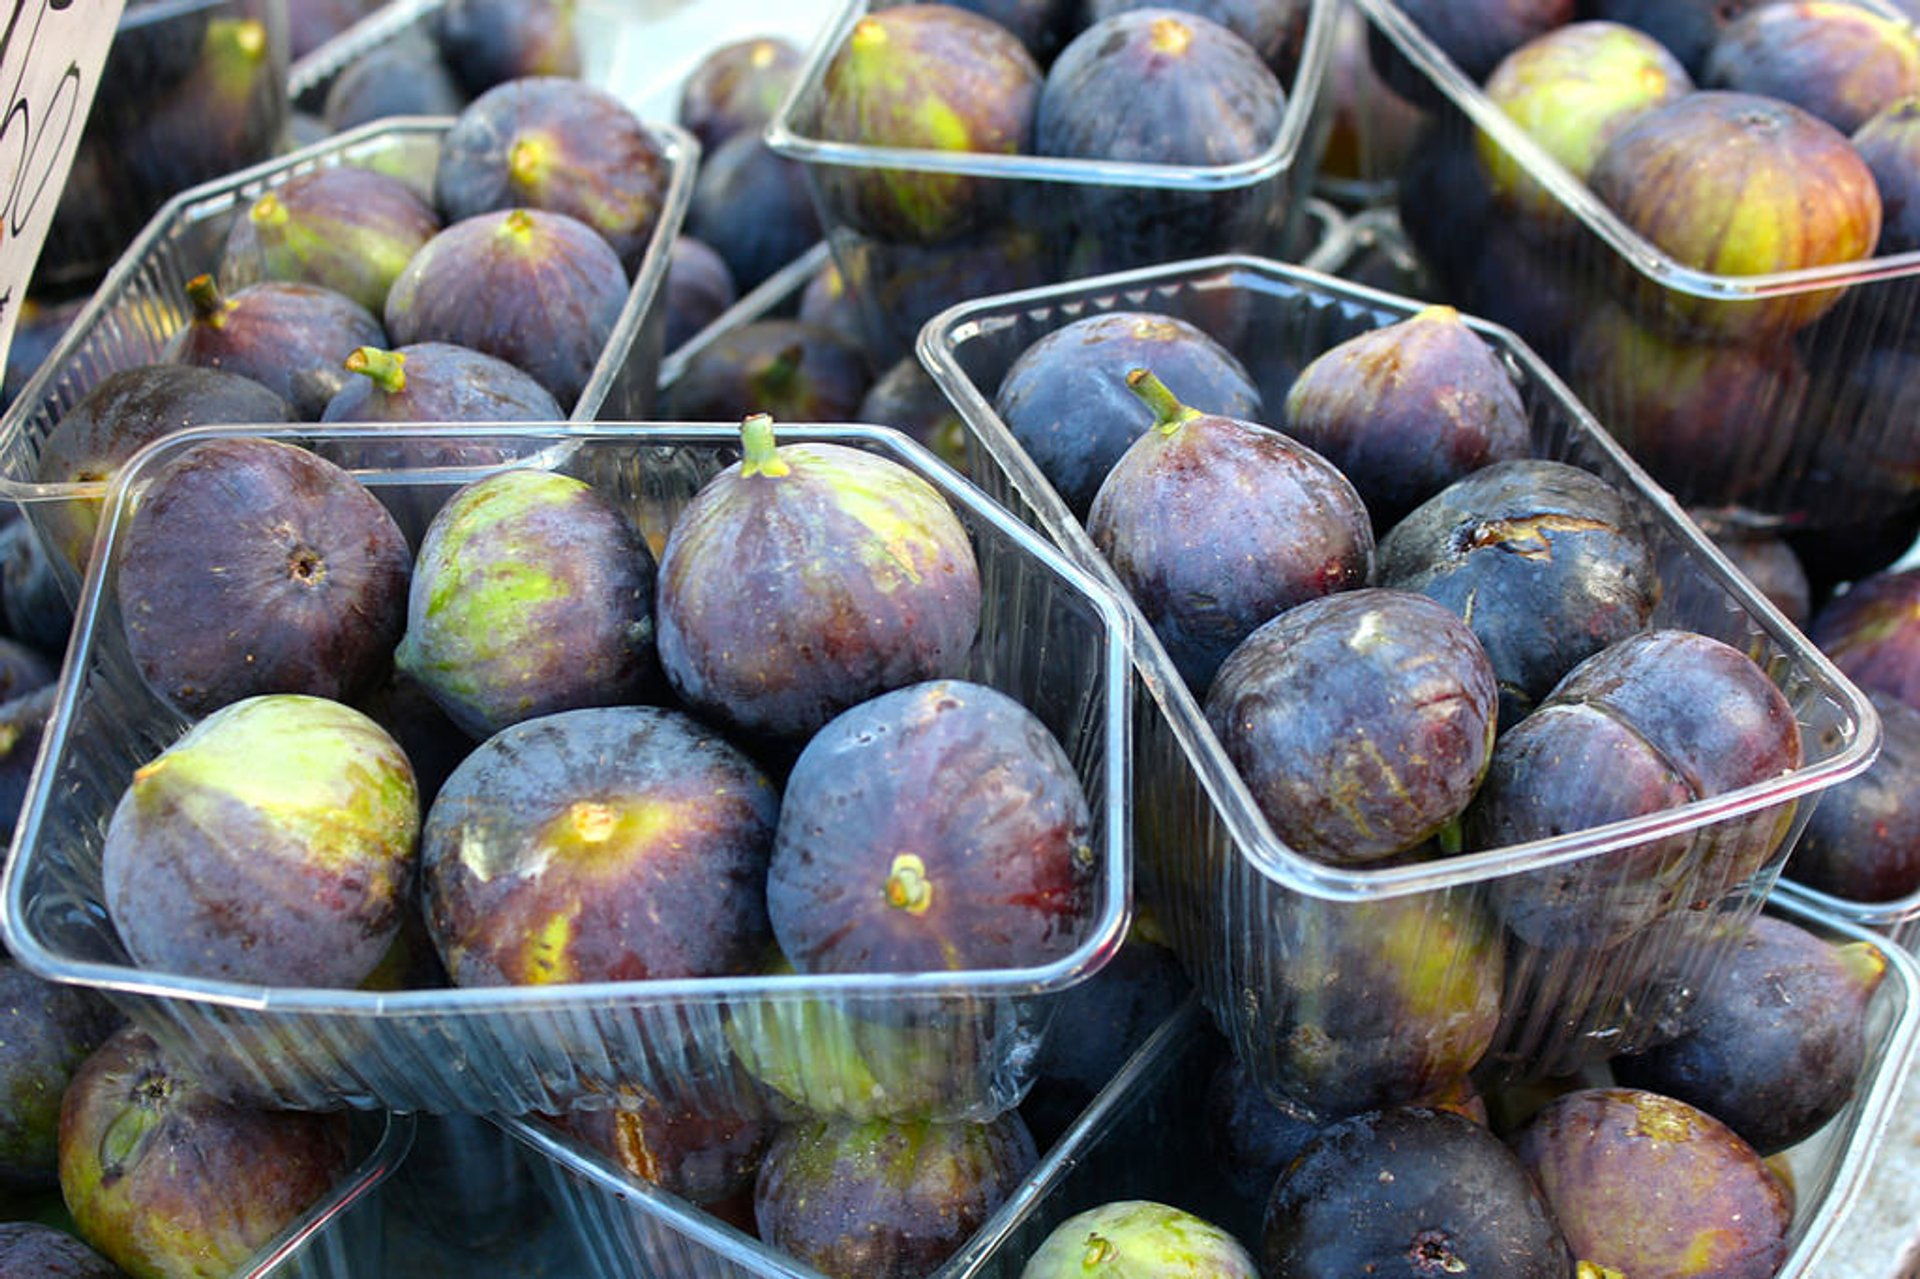 Figs in Athens 2019 - Best Time